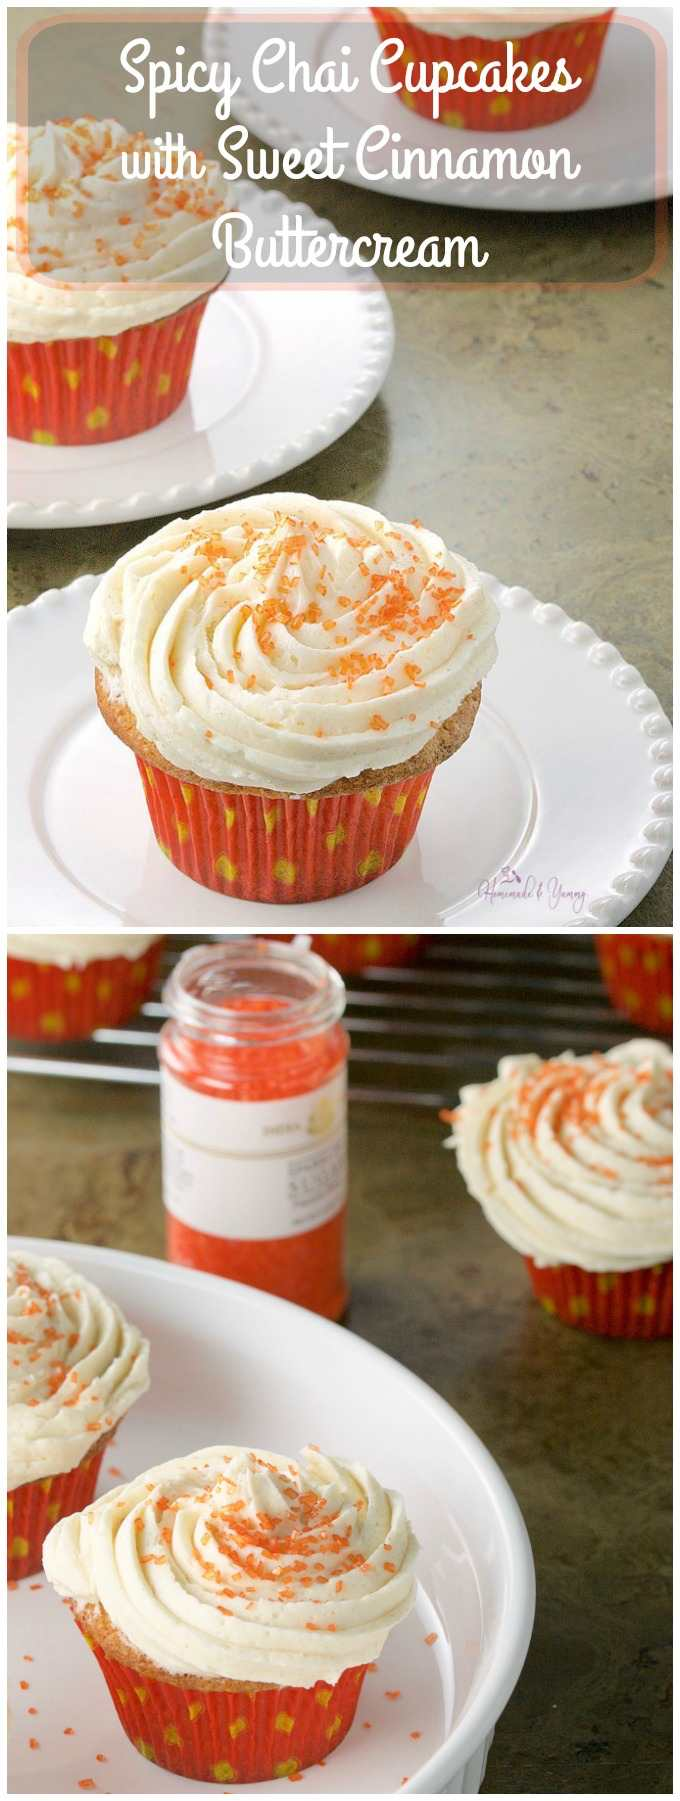 Spicy Chai Cupcakes with Sweet Cinnamon Buttercream long pin image.